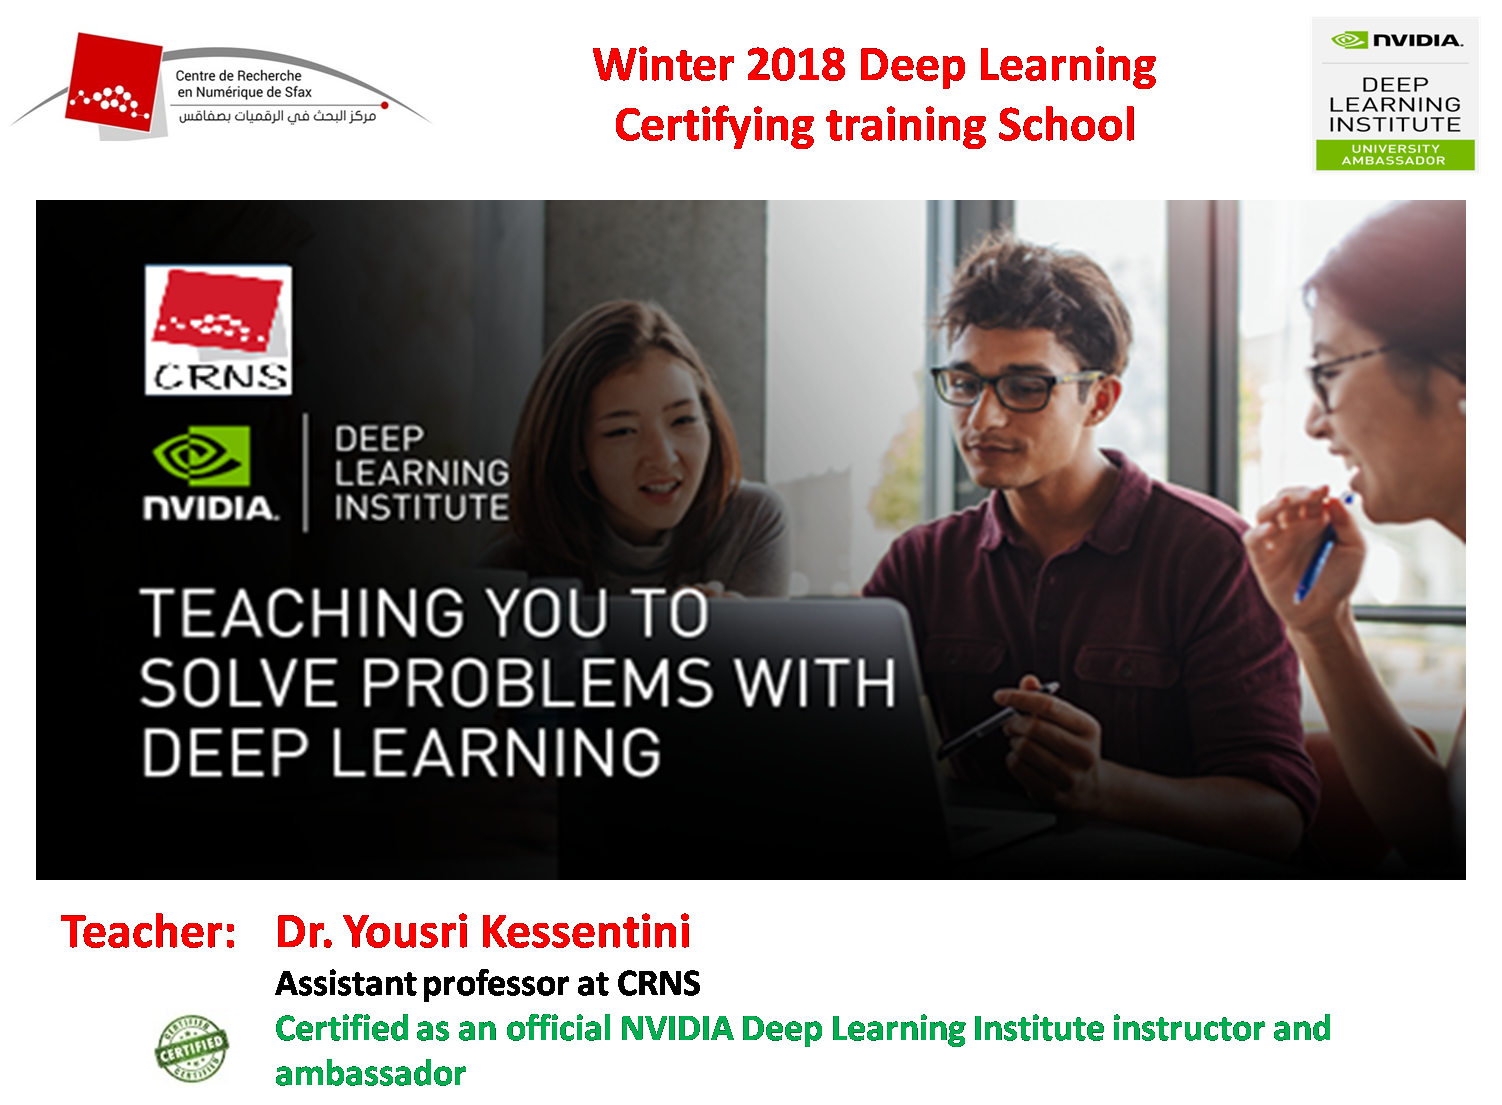 Deep Learning Certifying Training School 2018